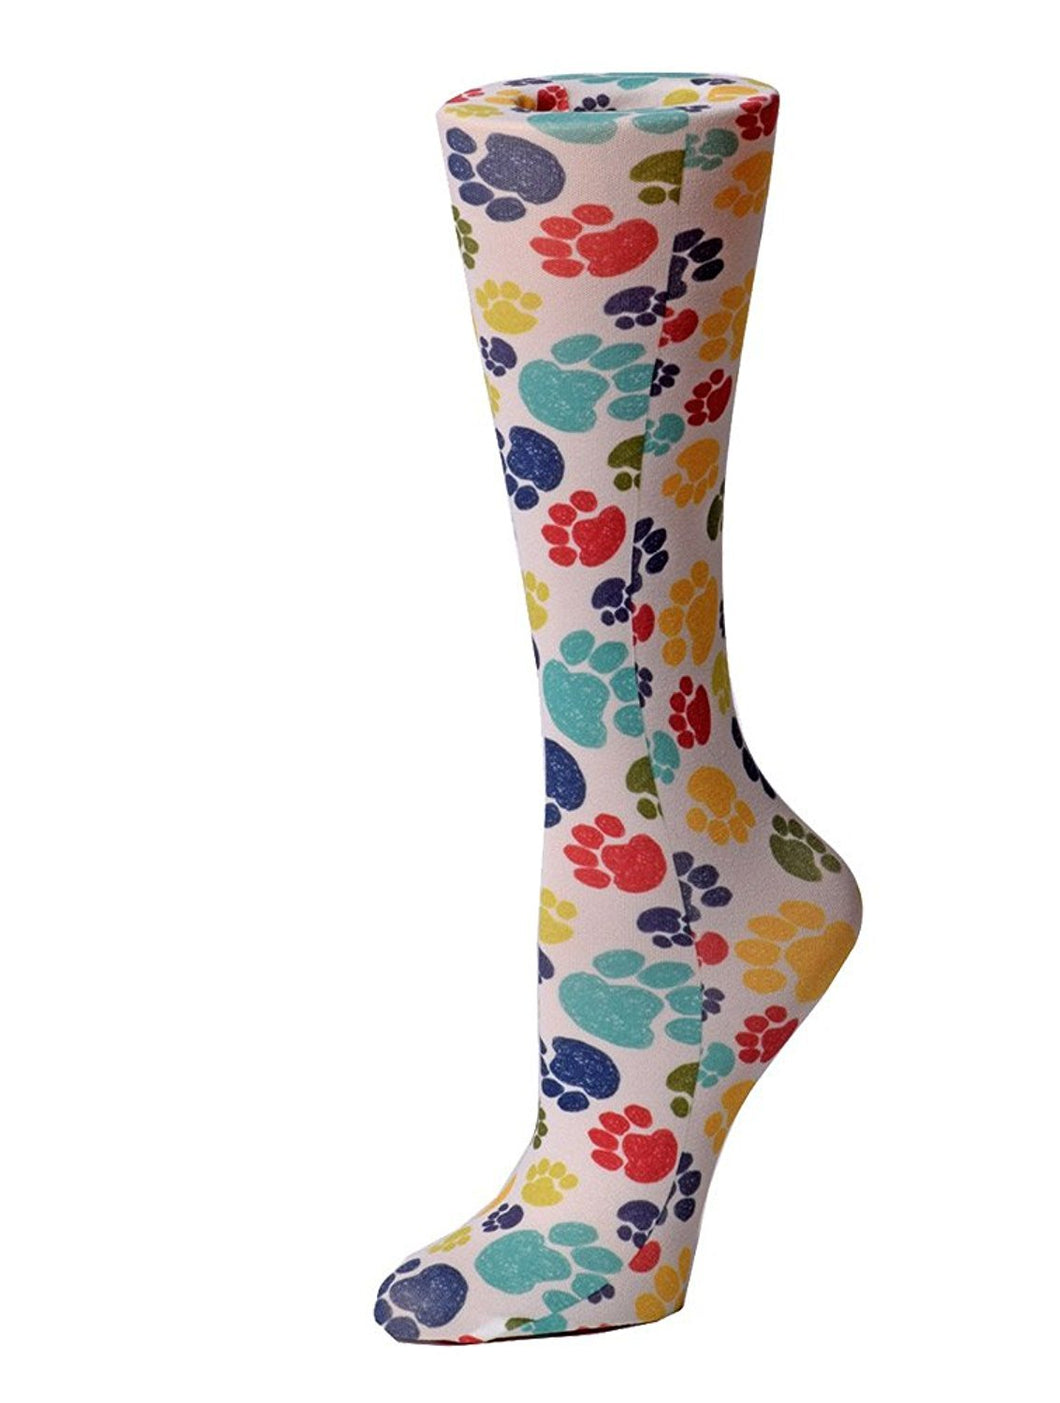 Cutieful Therapeutic Compression Socks - Paw Prints